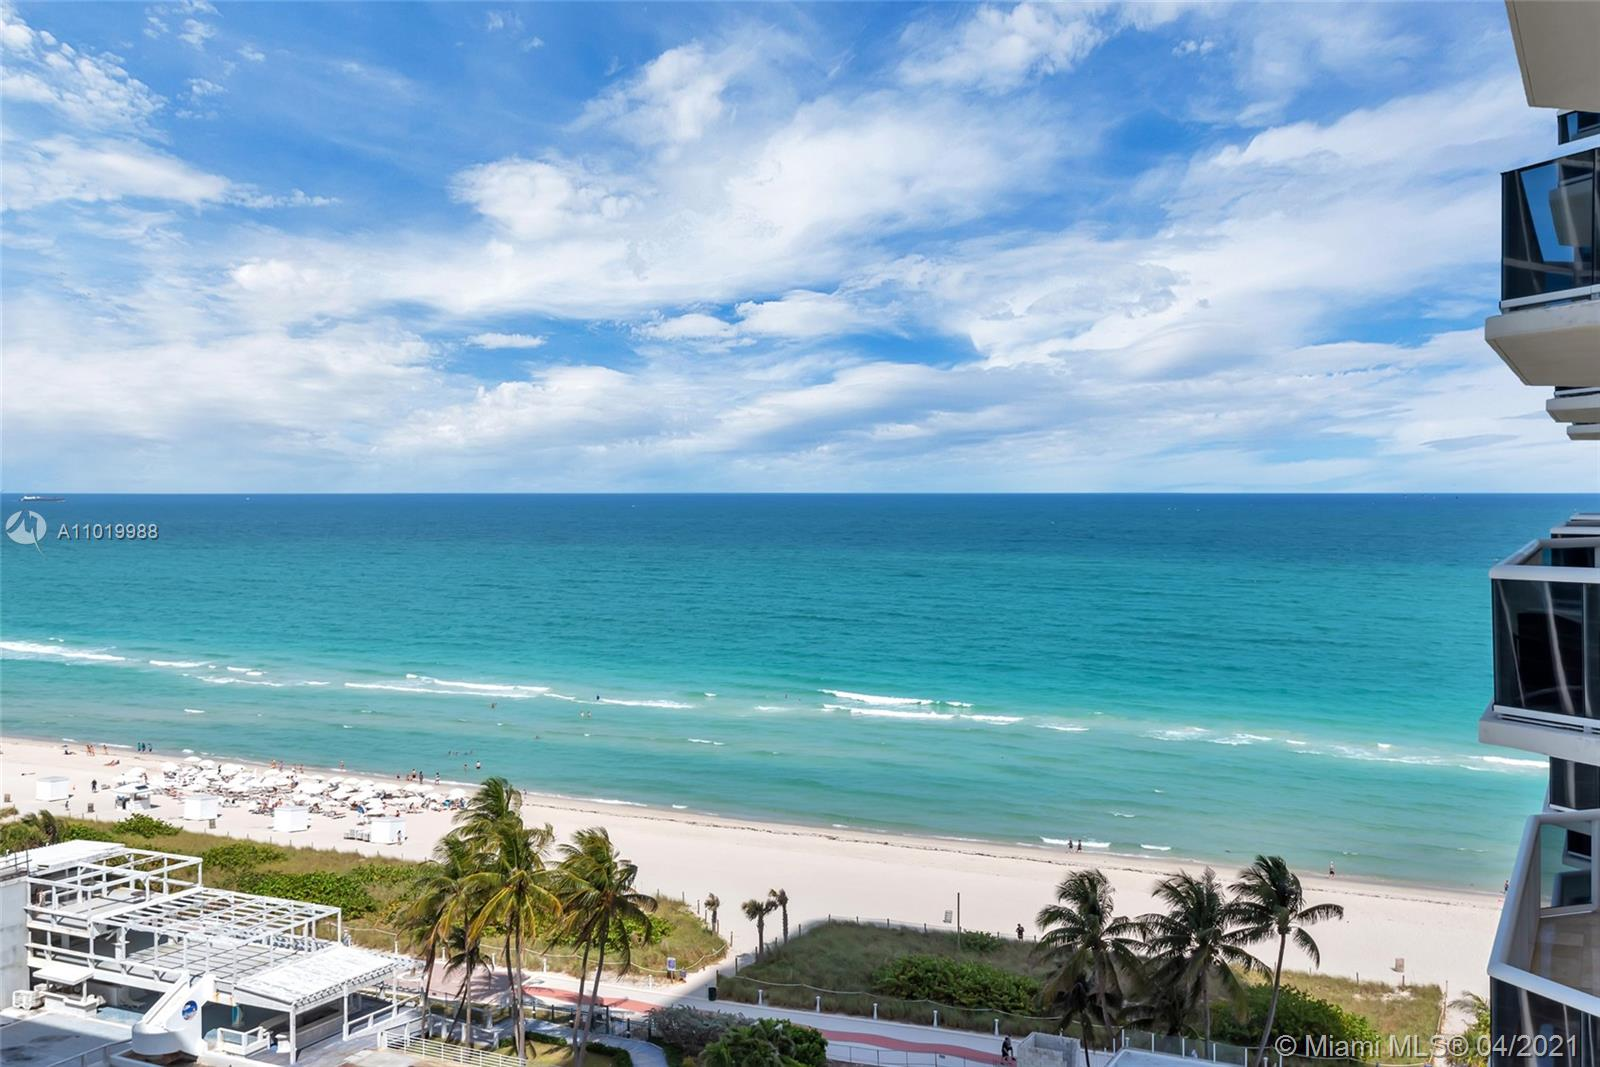 Spectacular renovated corner unit with breathtaking views of the ocean, bay, and Miami city skyline providing plenty of natural light. Unit 1407 is a 2 BED / 2 BATH, 1136 SQFT featuring modern finishes such as white porcelain floors, open kitchen, granite countertops, and a breakfast area overlooking the ocean & beach, Built-in closets, and spacious bedrooms. Blue and Green Diamond include 5-star amenities and are just minutes from SOBE, the performing Arts Center, Downtown, Miami International Airport, and world-renowned Bal Harbor Shops. Call listing agent for showings and information.